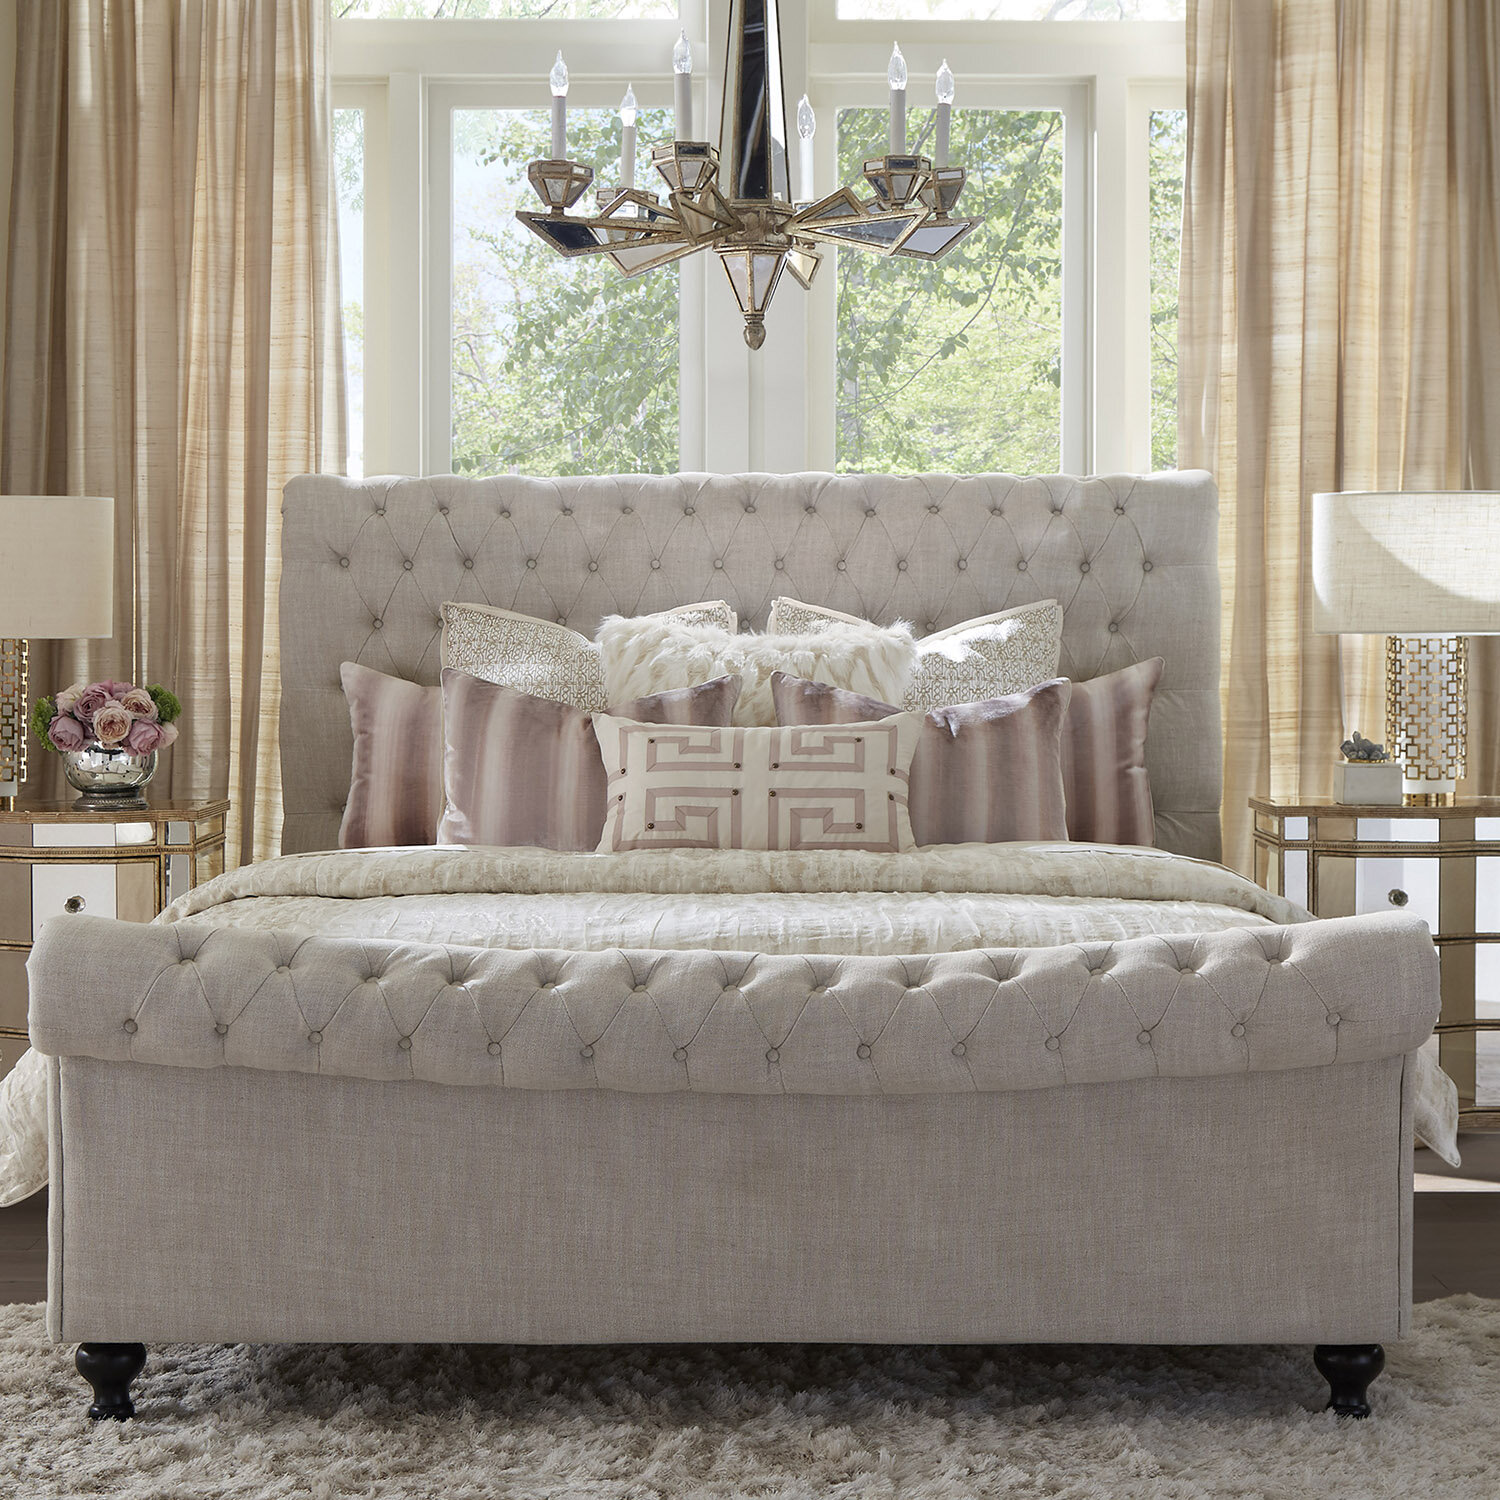 Fairview Home Jackie Crepe Tufted Upholstered Sleigh Bed Reviews Wayfair